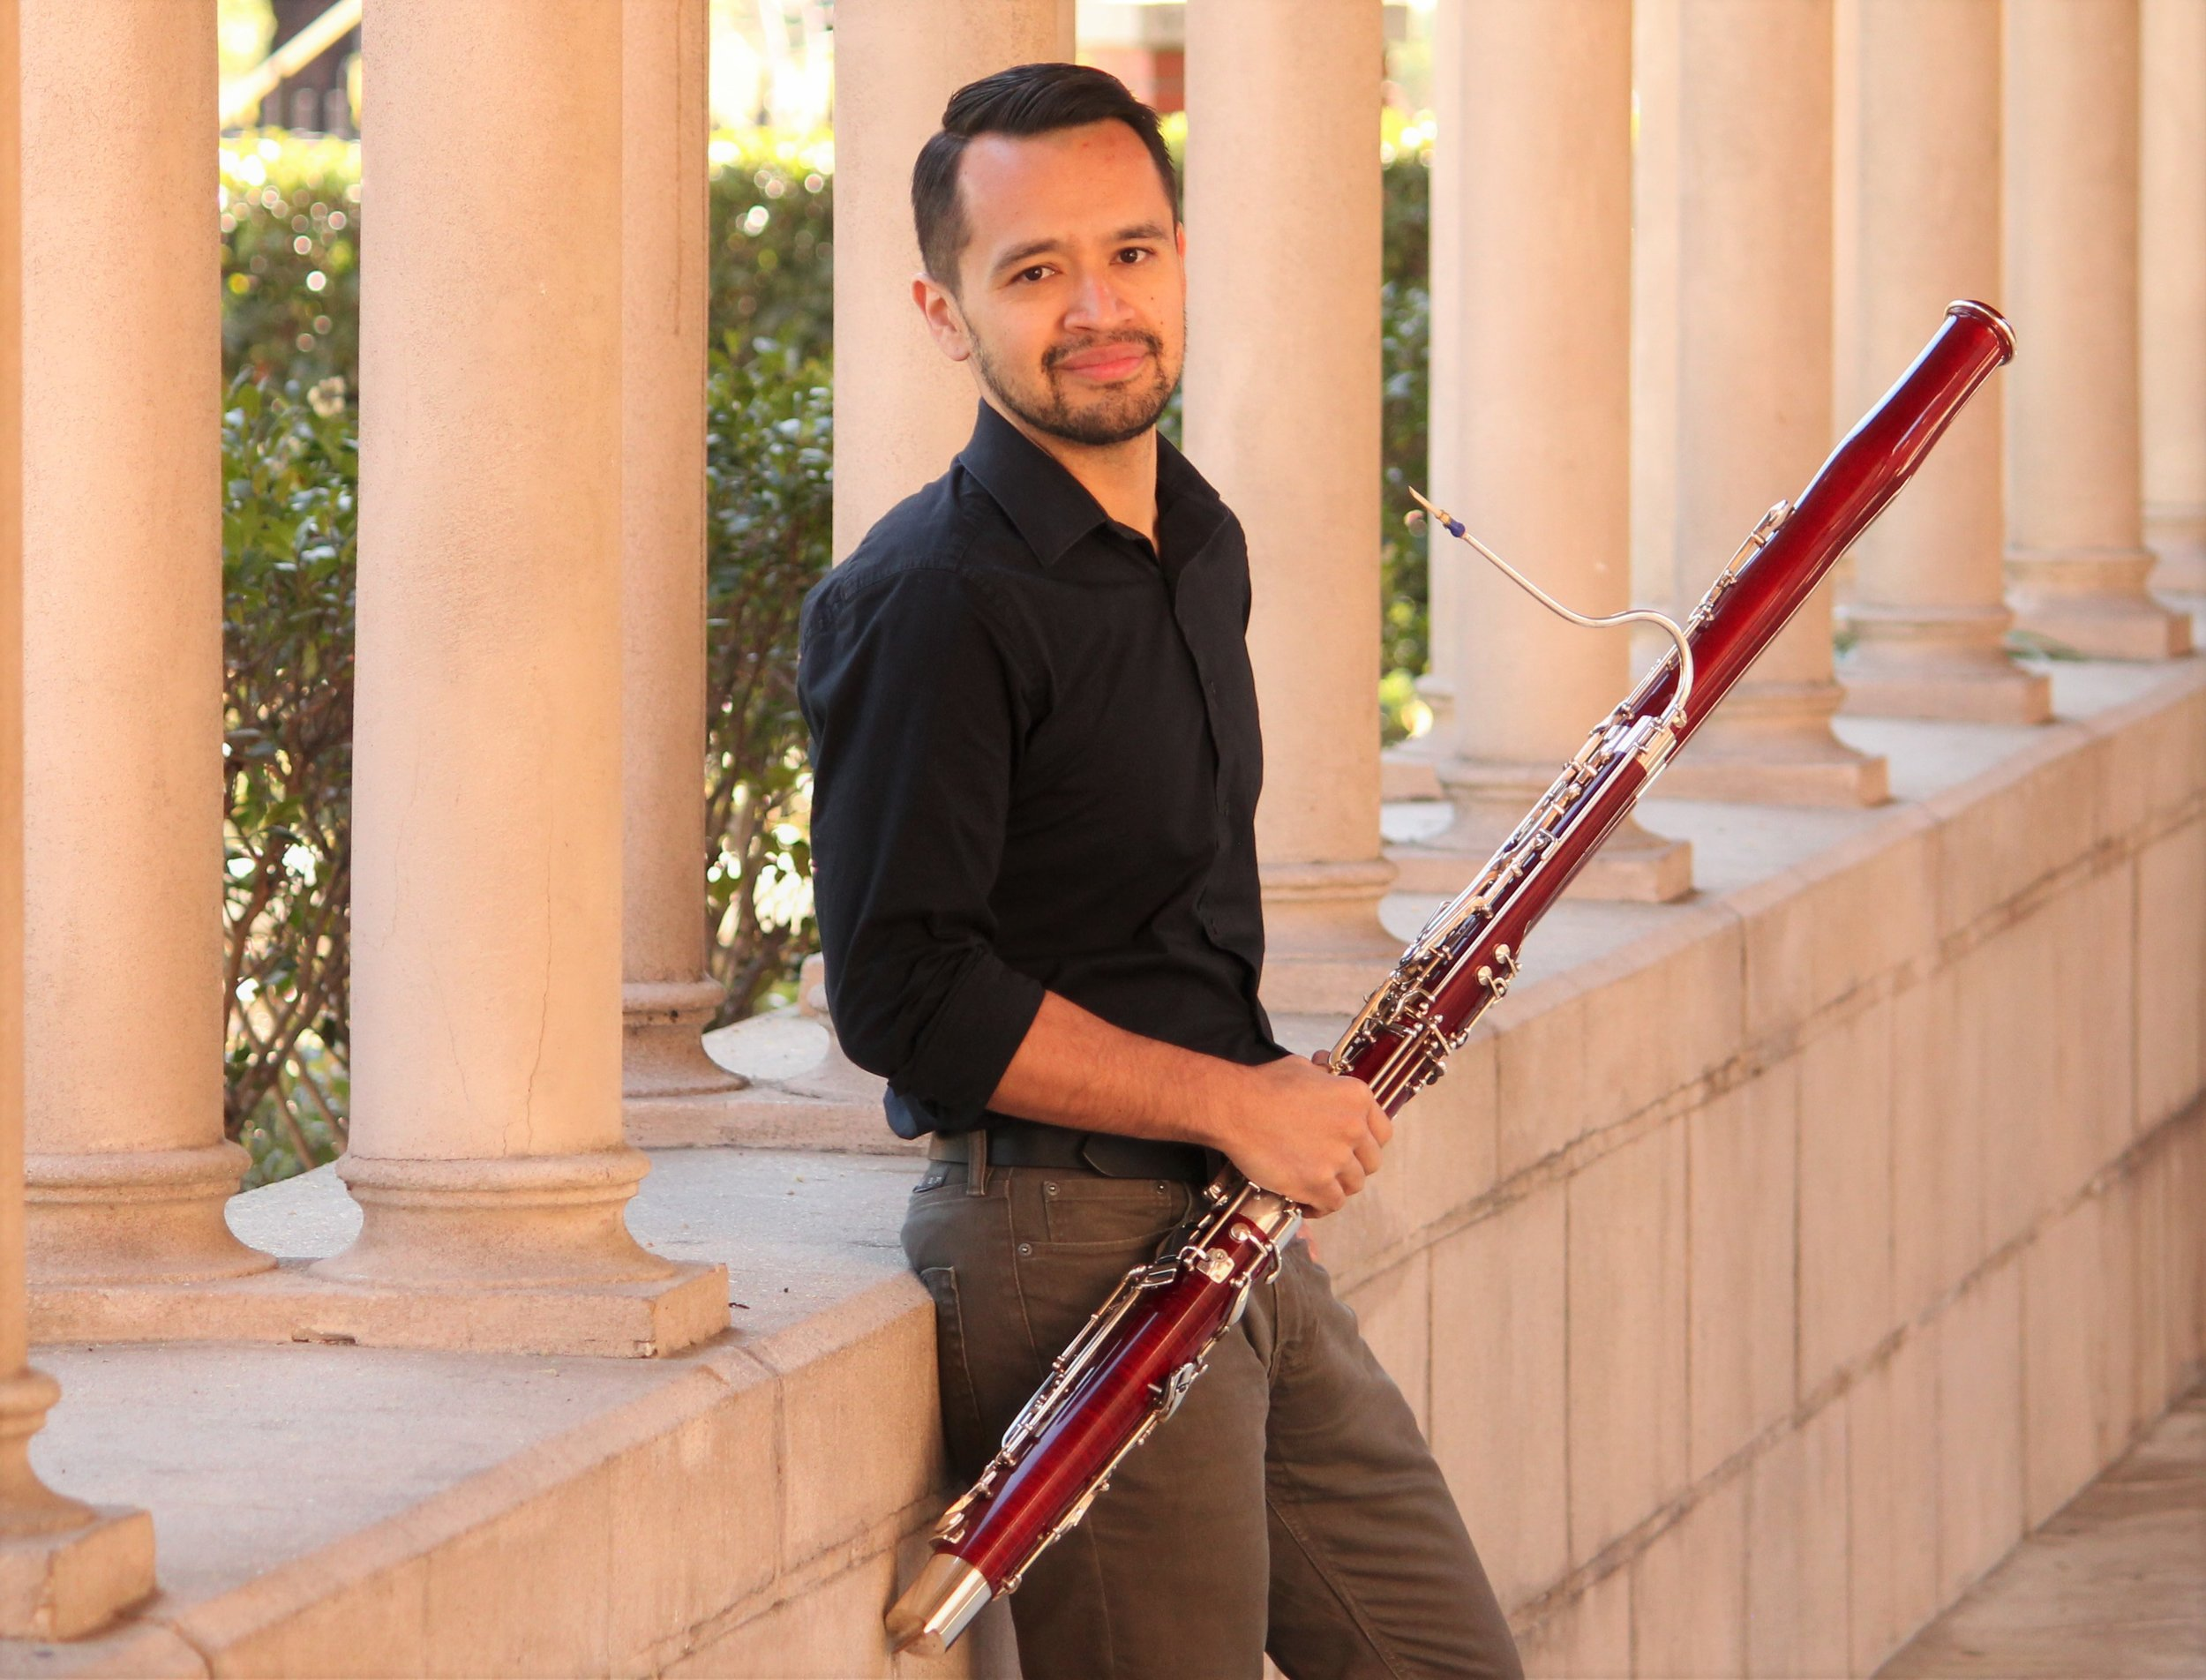 Alex Rosales Garc ía   A lex Rosales Garcia, Mexican-born and San Francisco raised, is a dynamic bassoonist living in Los Angeles, California. An active musician in Southern California and Nevada, Alex has performed with various groups including the Los Angeles Philharmonic, Las Vegas Philharmonic , Hollywood Chamber Orchestra, New West Symphony, Brevard Music Center Orchestra, Golden State Pops Orchestra, the Southeast Symphony Orchestra, and as Principal Bassoon with the Debut Orchestra from 2013 to 2016. He has played under many notable conductors including JoAnn Falletta, Mirga Gražinytė-Tyla, Bramwell Tovey, Carl St. Clair, Keith Lockhart, Christoph König and Matthias Bamert.  Along with the other members of his sextet, Cardinal Winds, Alex was awarded the Grand Prize at the 2015 Plowman Chamber Music Competition held in Columbia, Missouri. That same year they were also named semi-finalists in the Fischoff Chamber Competition and finalists at the Coleman Chamber Competition. The group was also honored with a Max H. Gluck fellowship and performed various community engagement concerts on a weekly basis within underserved communities in greater Los Angeles.  A passionate educator, Alex is also an acclaimed teaching artists for the Los Angeles Philharmonic's signature 'El Sistema' program – YOLA (Youth Orchestra Los Angeles) He is the principal bassoon instructor, musicianship teacher and chamber music coach at the EXPO site (South Los Angeles) and Double Reed specialist at the HOLA site (Rampart District). Furthermore, he has held the positions of Double Reed instructor with the National Take A Stand Festival--a top-tier national youth orchestra for El Sistema-inspired programs across the United States. Alex also maintains a vibrant and active bassoon studio and is proud of his many students who have won positions in local youth orchestras and obtained full-ride scholarships to various music schools.